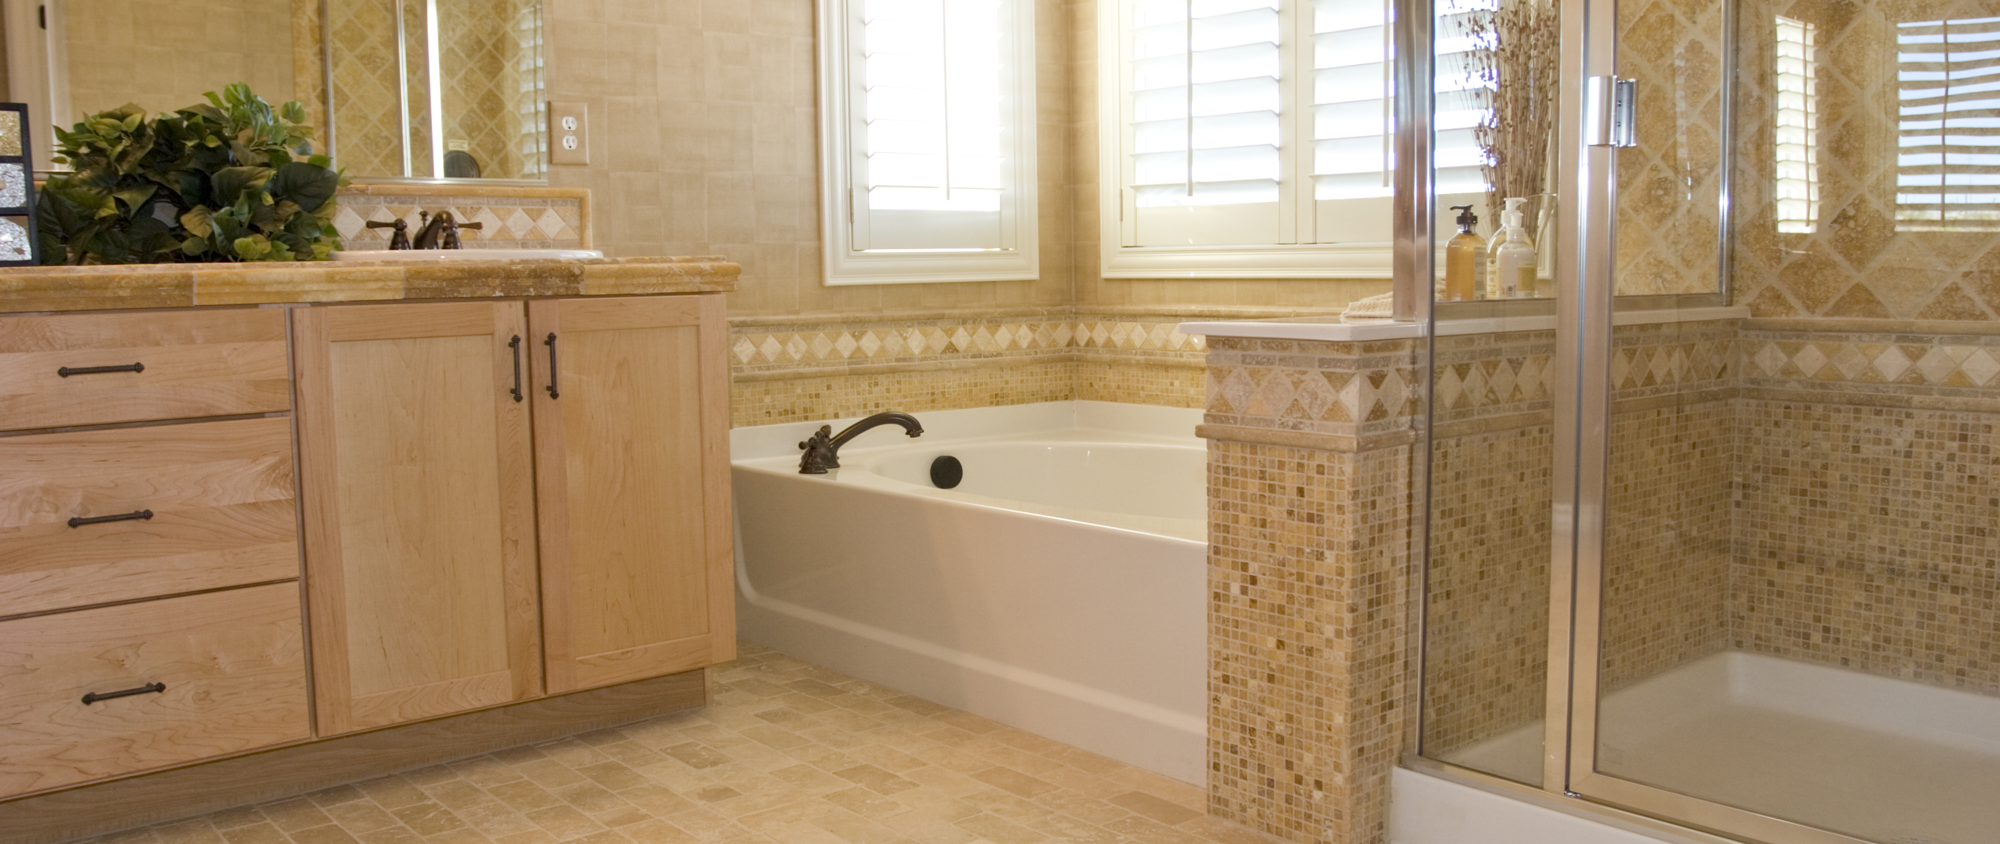 Bathroom Remodeling Total Touch Home Improvements - Total bathroom remodel